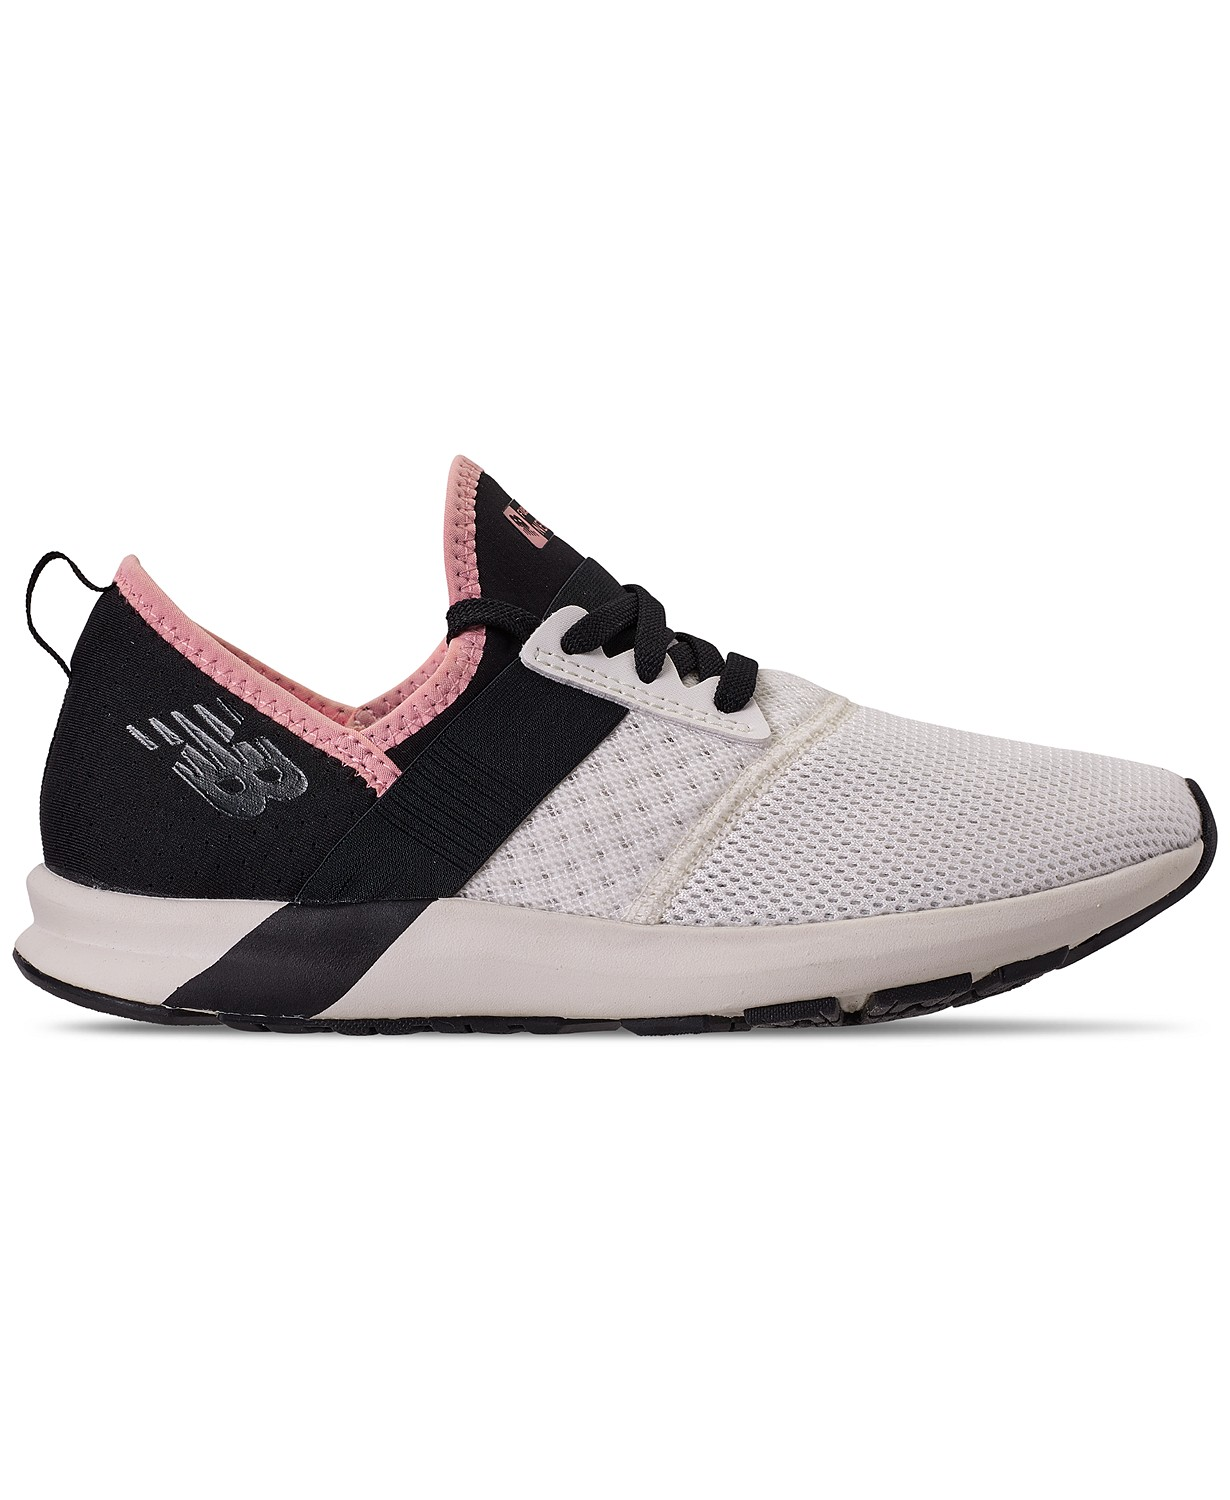 New Balance Women's FuelCore NERGIZE Walking Sneakers from Finish Line- ONLY!